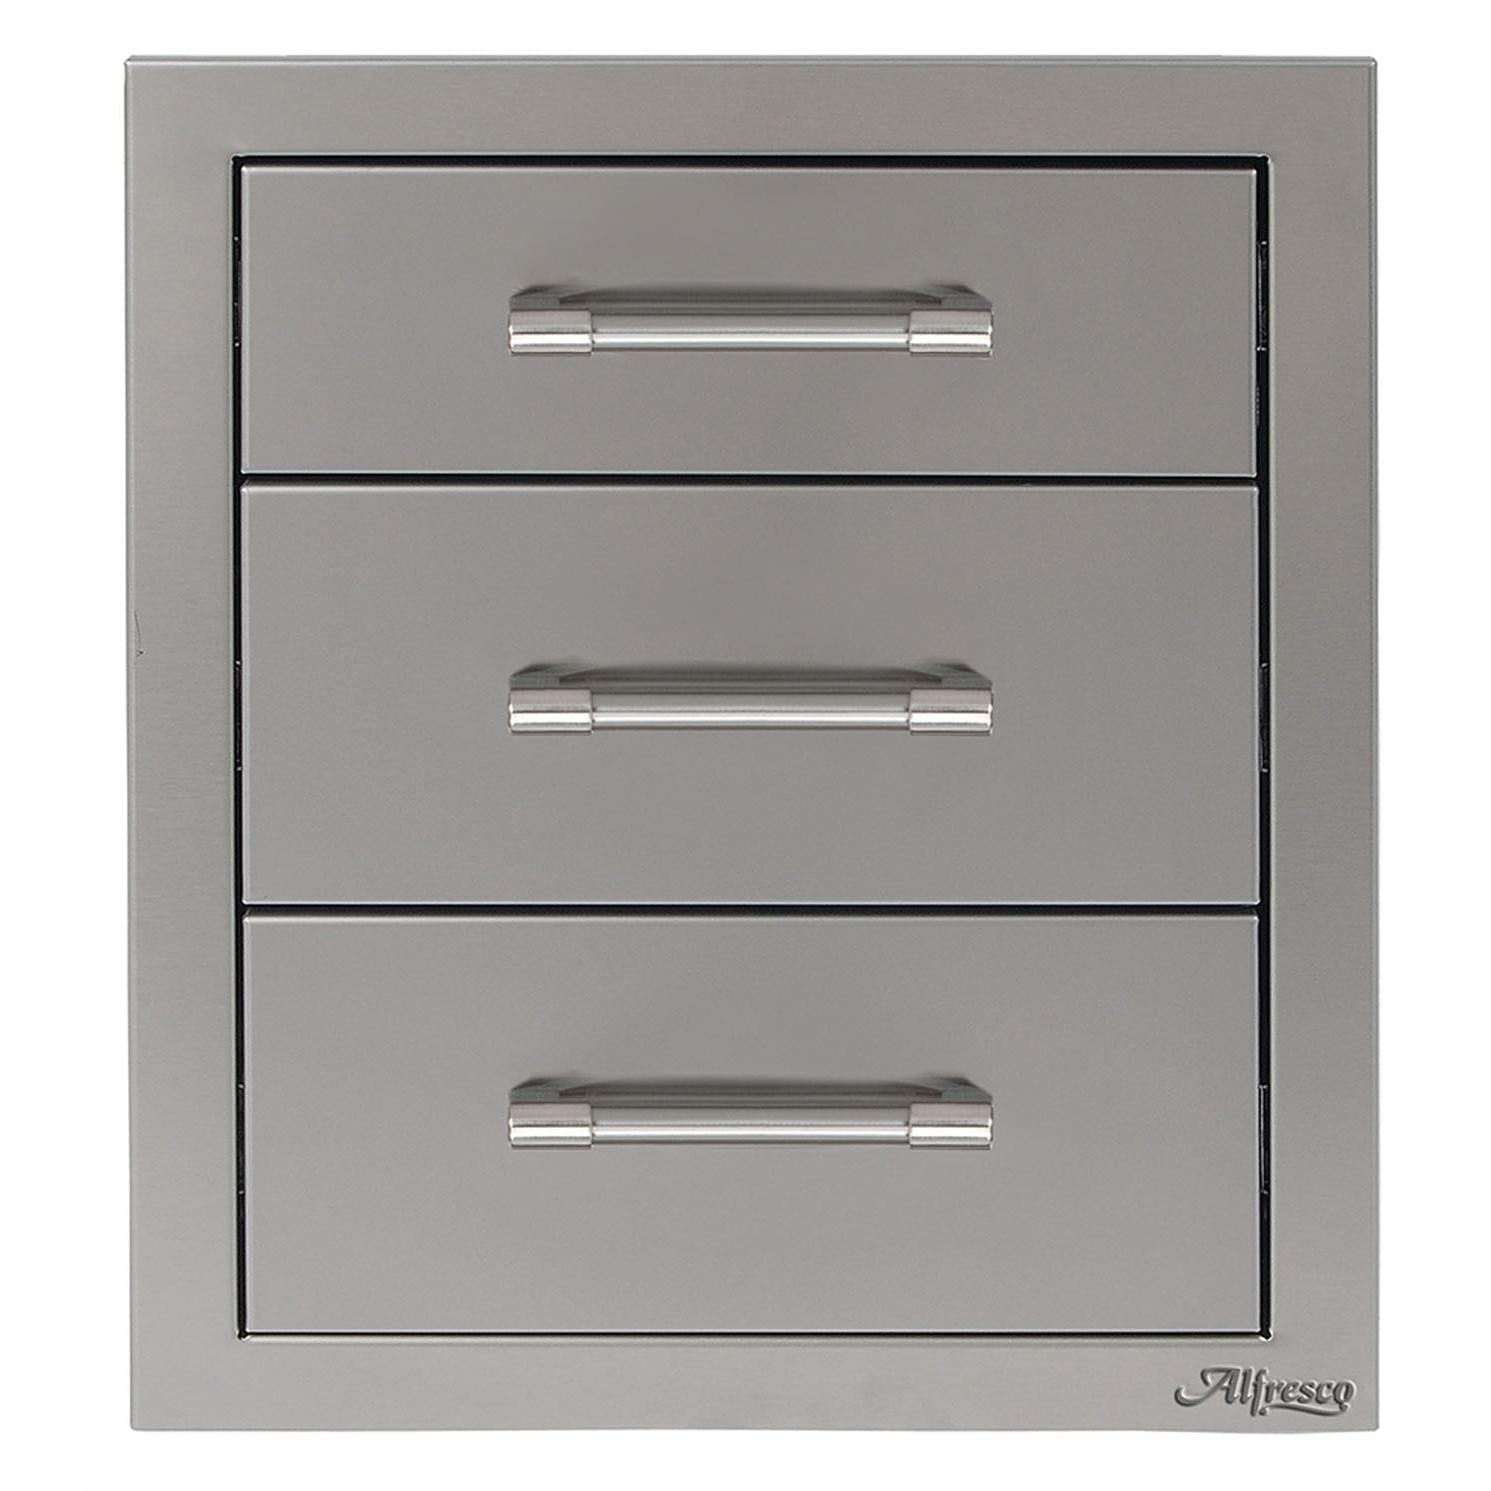 Alfresco 17-Inch Triple Access Drawer